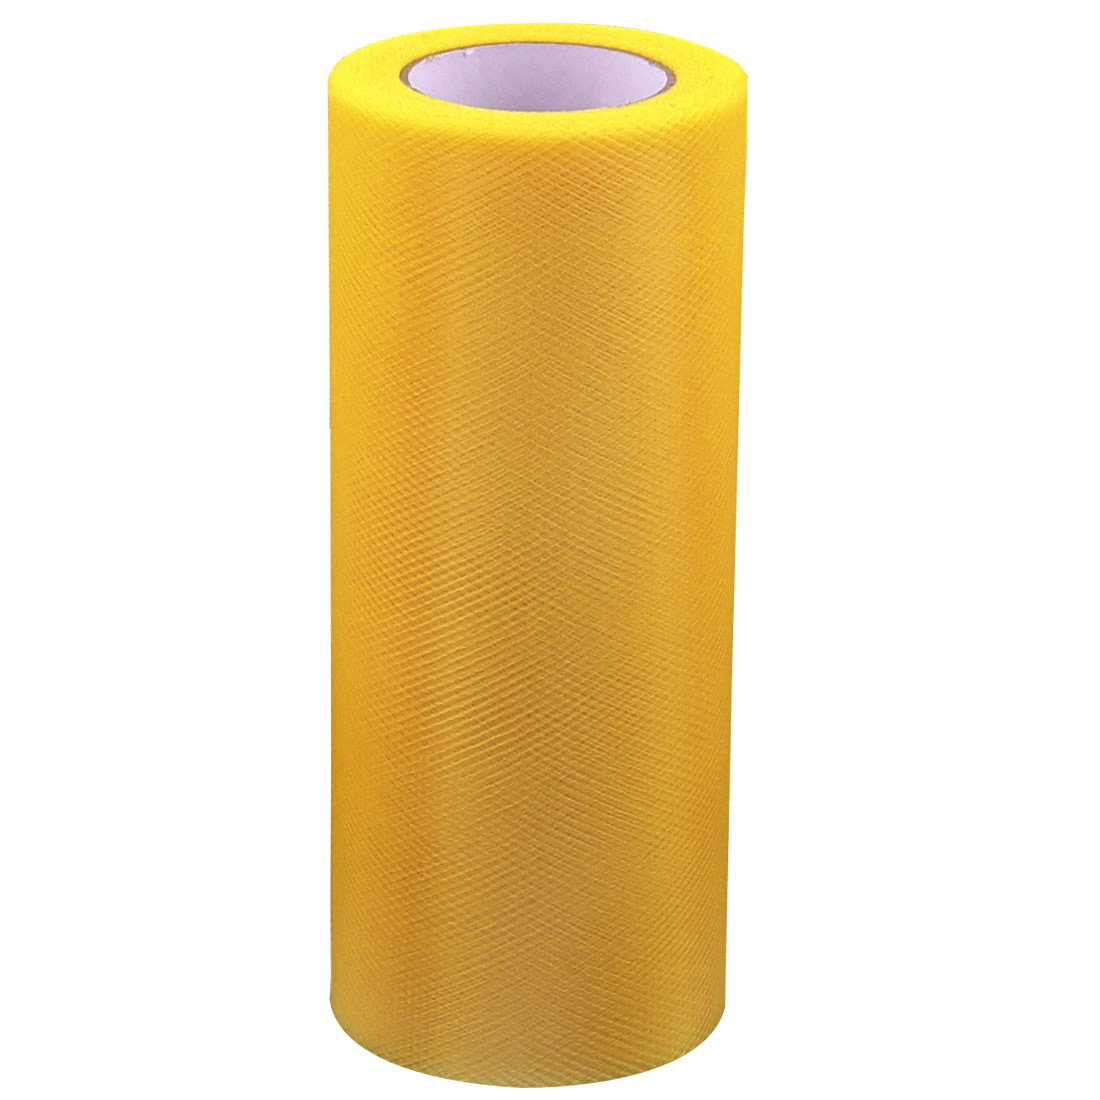 Wedding Party Banquet Decor Nylon Mesh Tulle Roll Spool Dark Yellow 25 Yards